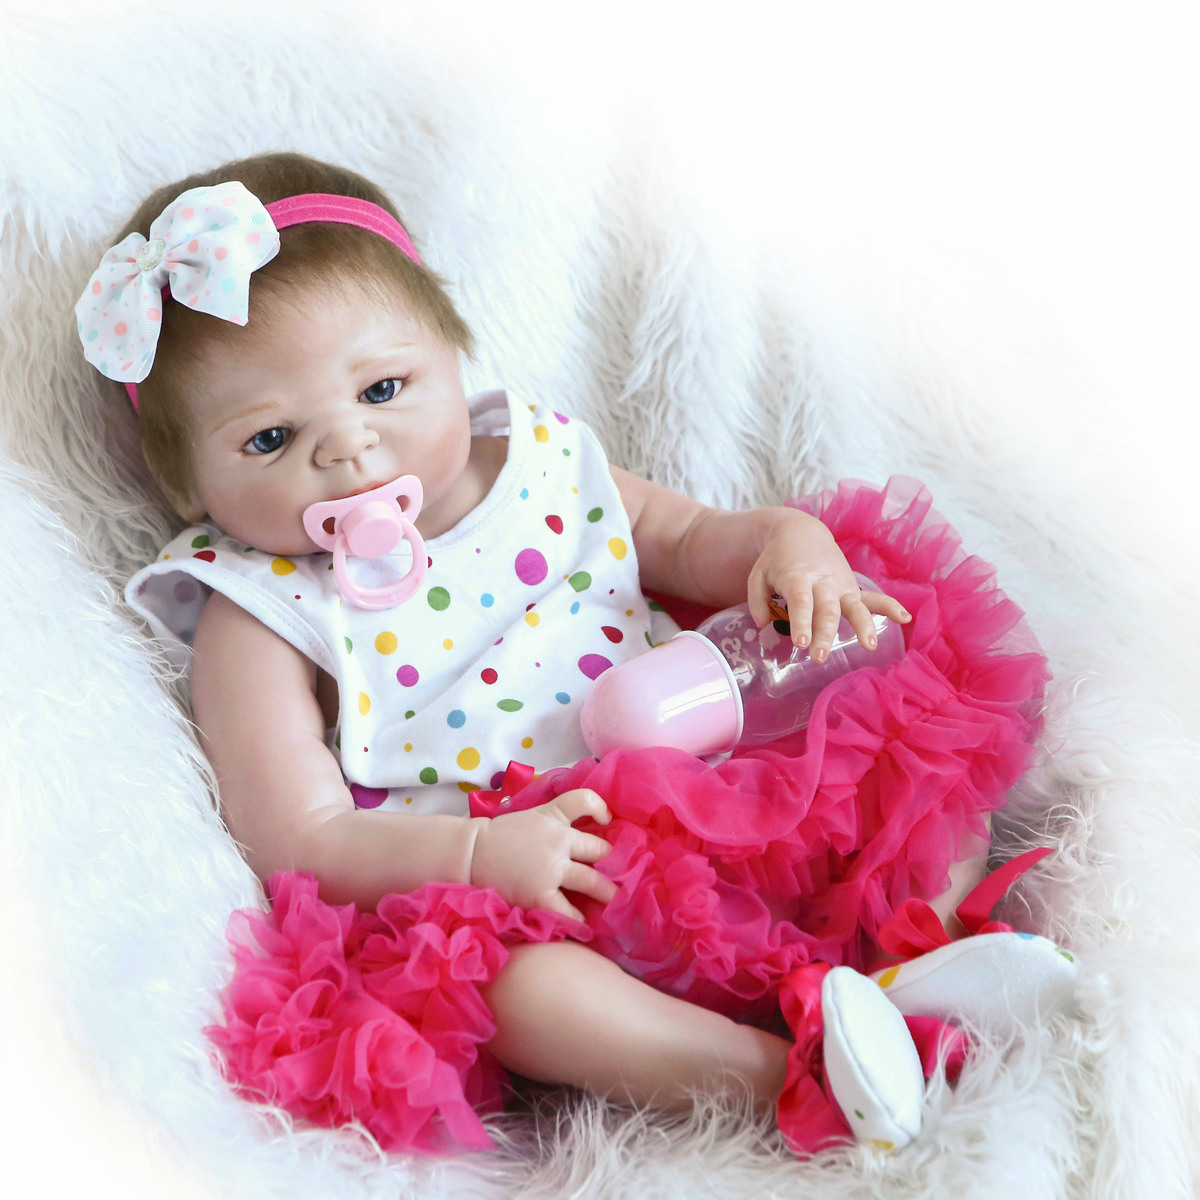 Full Rubber Silicone Fund Simulation Be Reborn Baby Girls Toys Popular Hot Stable